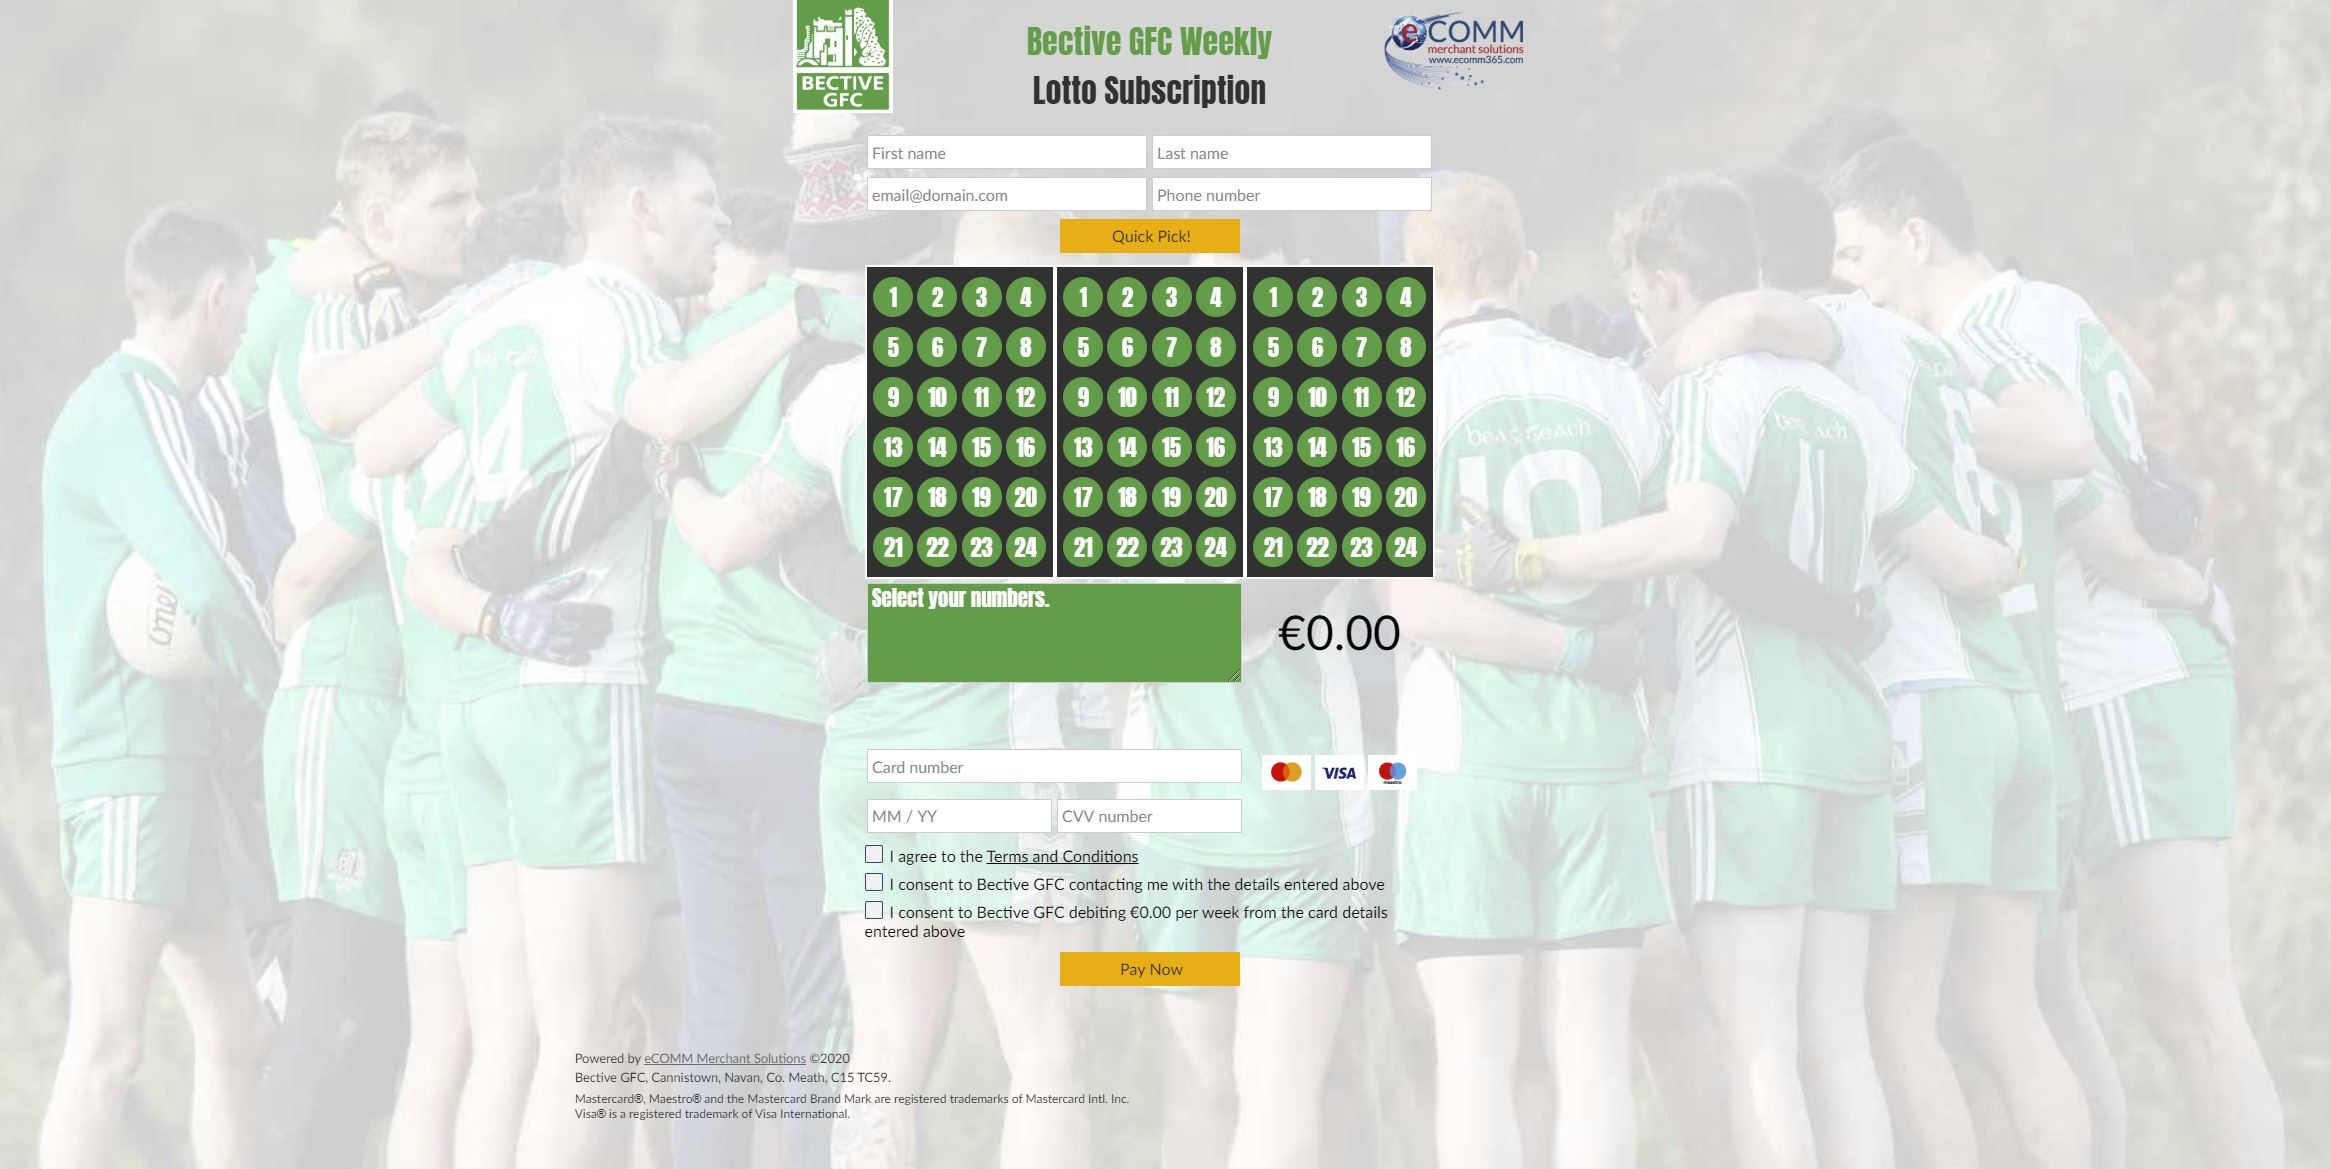 Bective GFC Lotto starting Tues 7th July with a jackpot of €5300